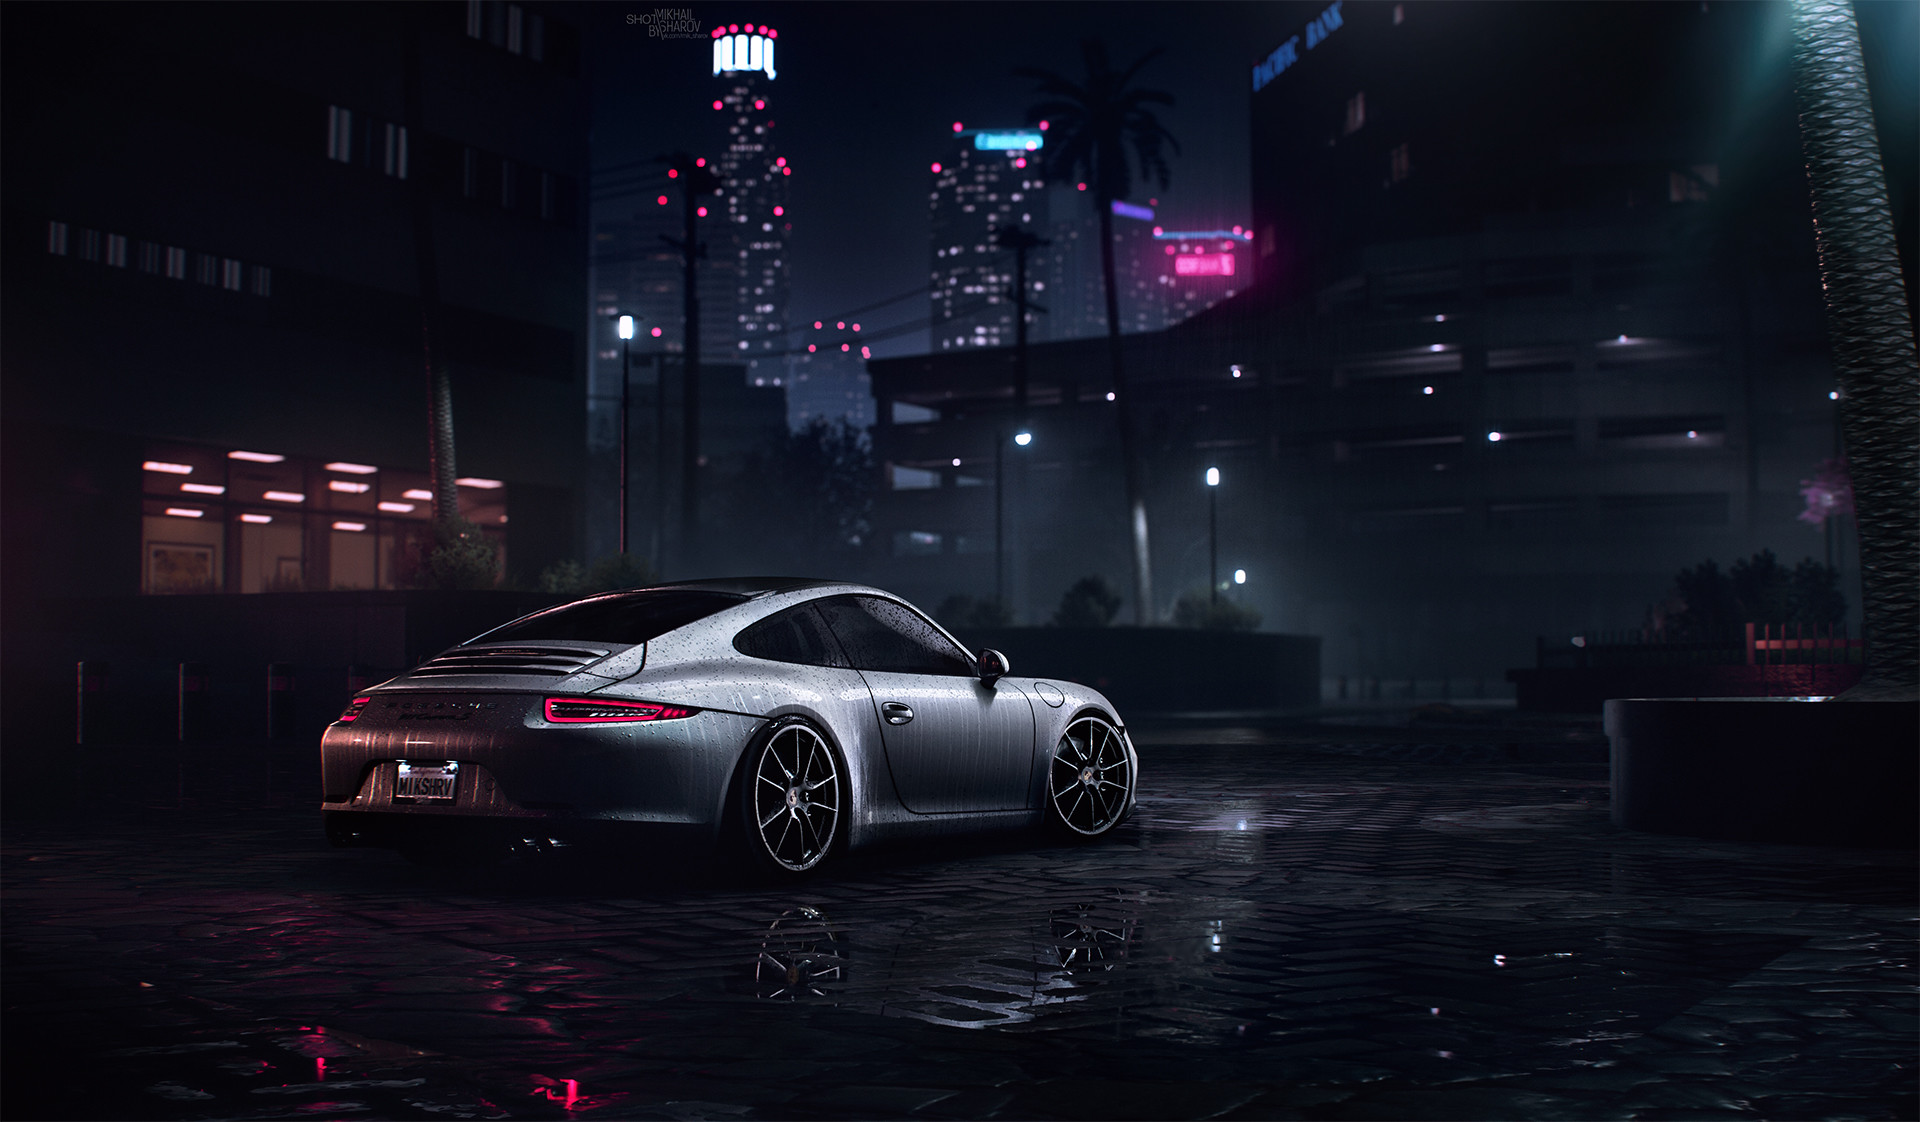 porsche 911 carrera s need for speed, hd cars, 4k wallpapers, images